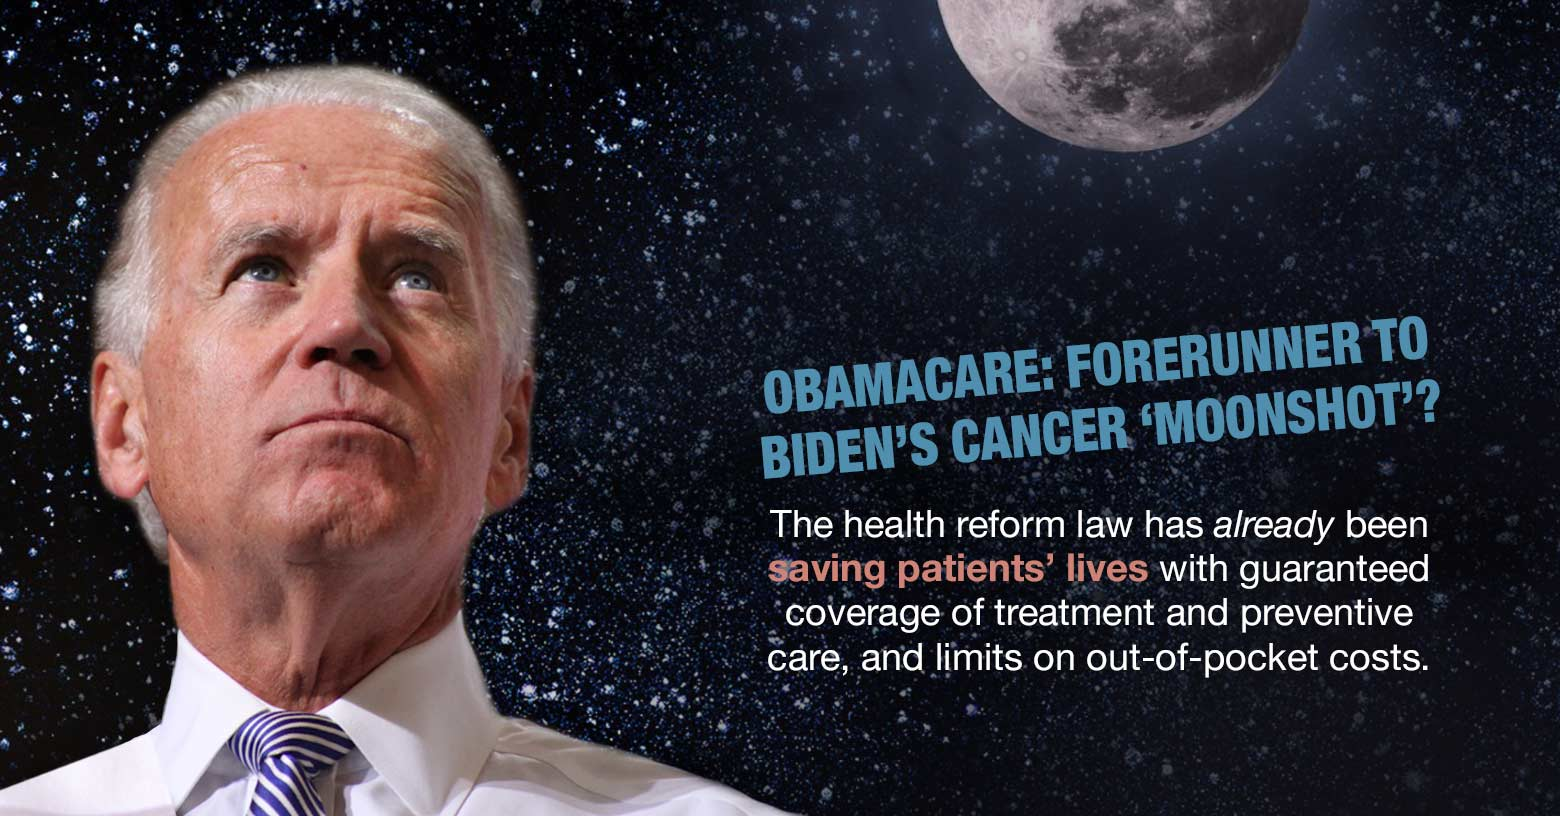 Moonshot only the latest of Obama cancer missions photo